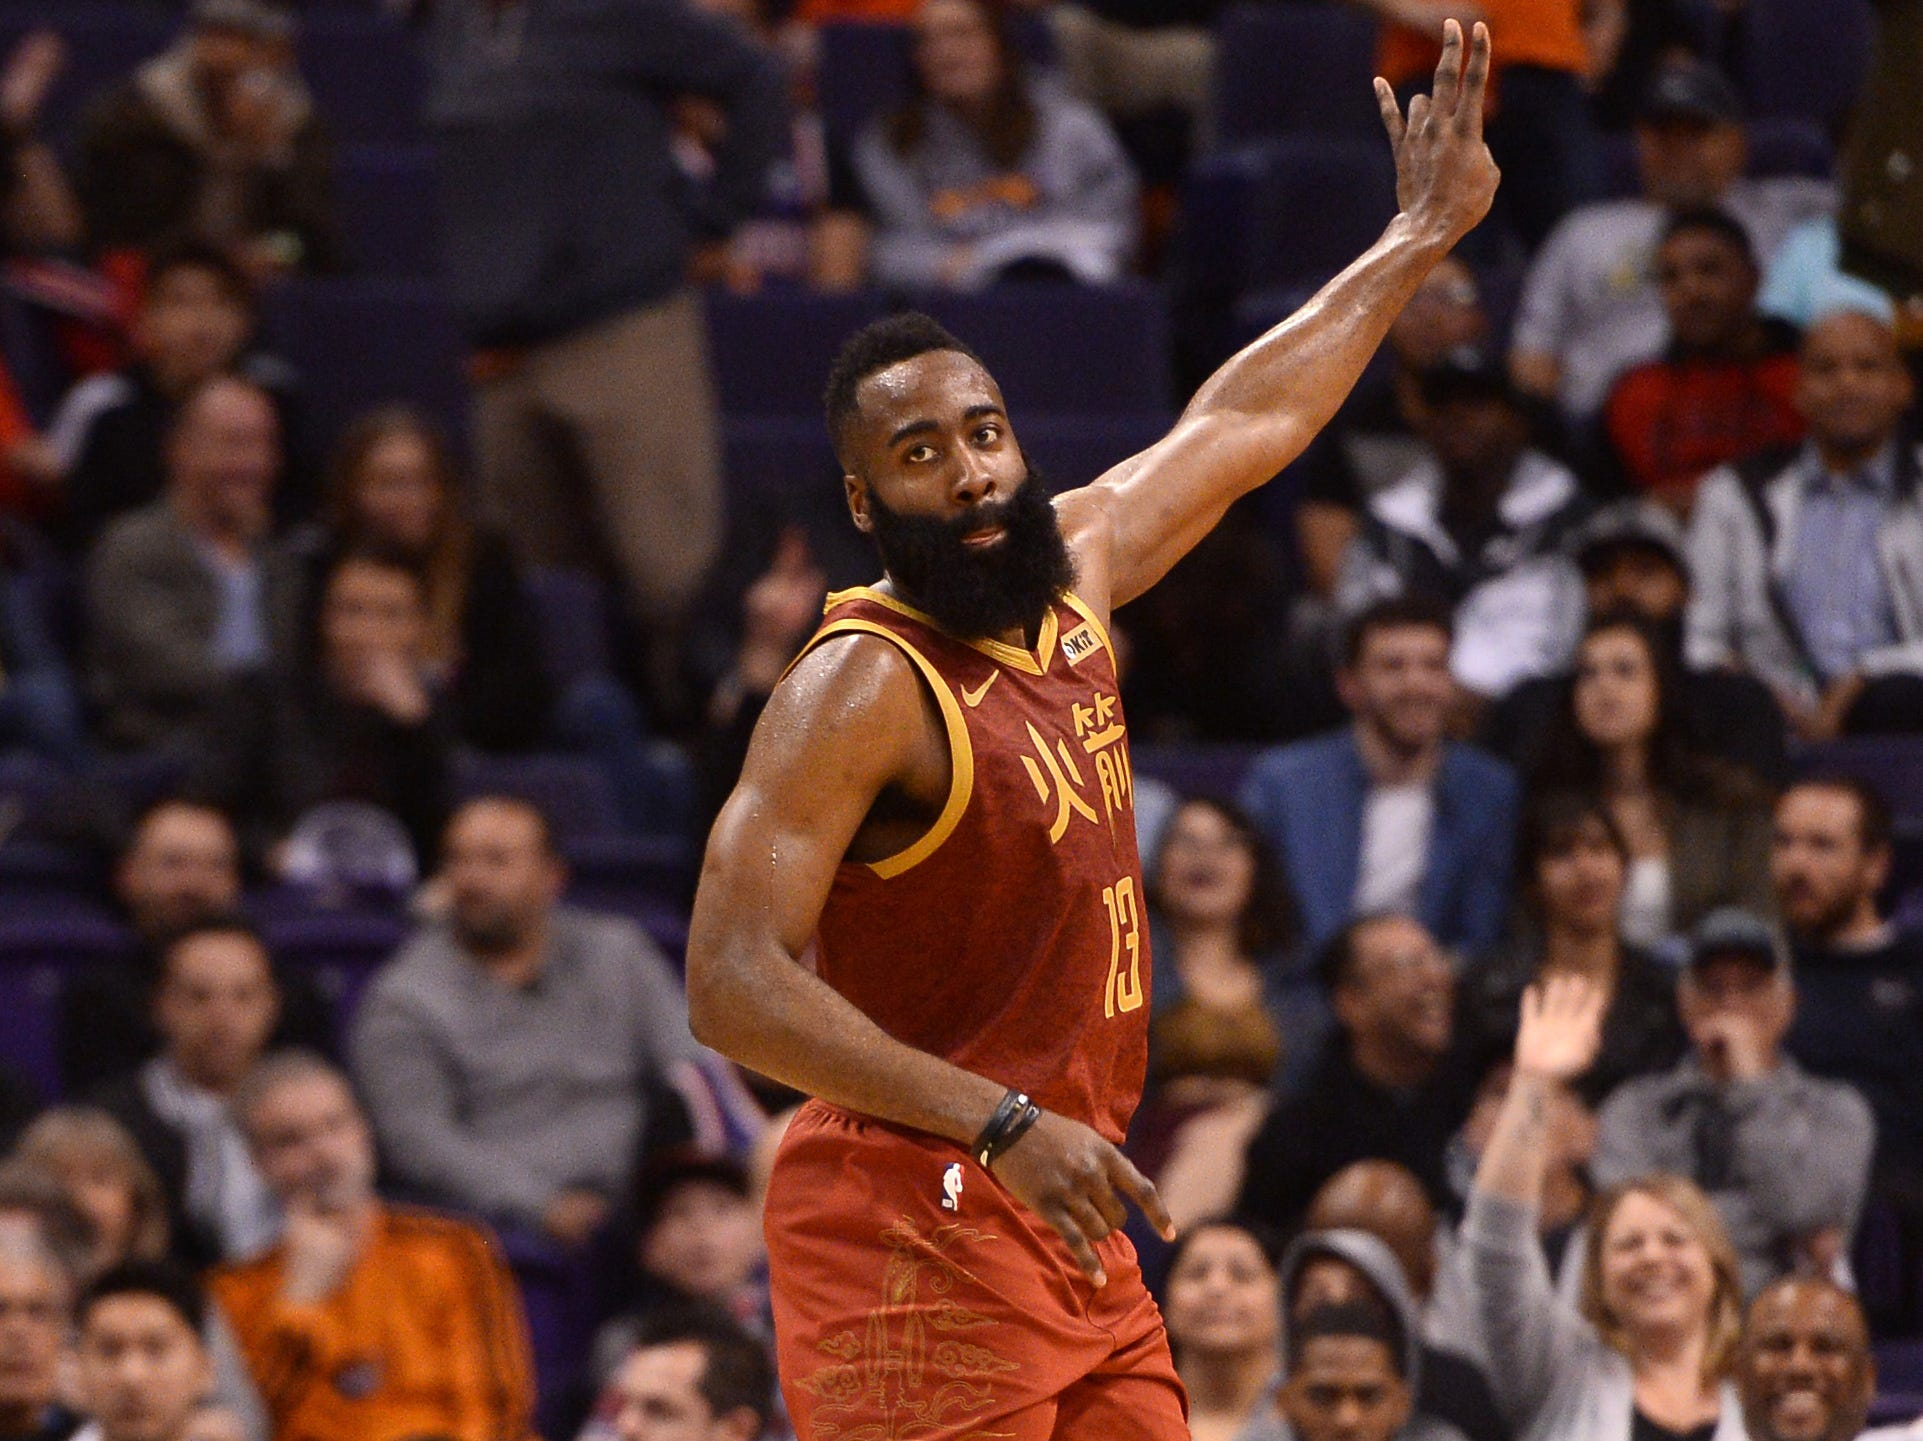 Rockets' James Harden clears 30 points for 27th straight game